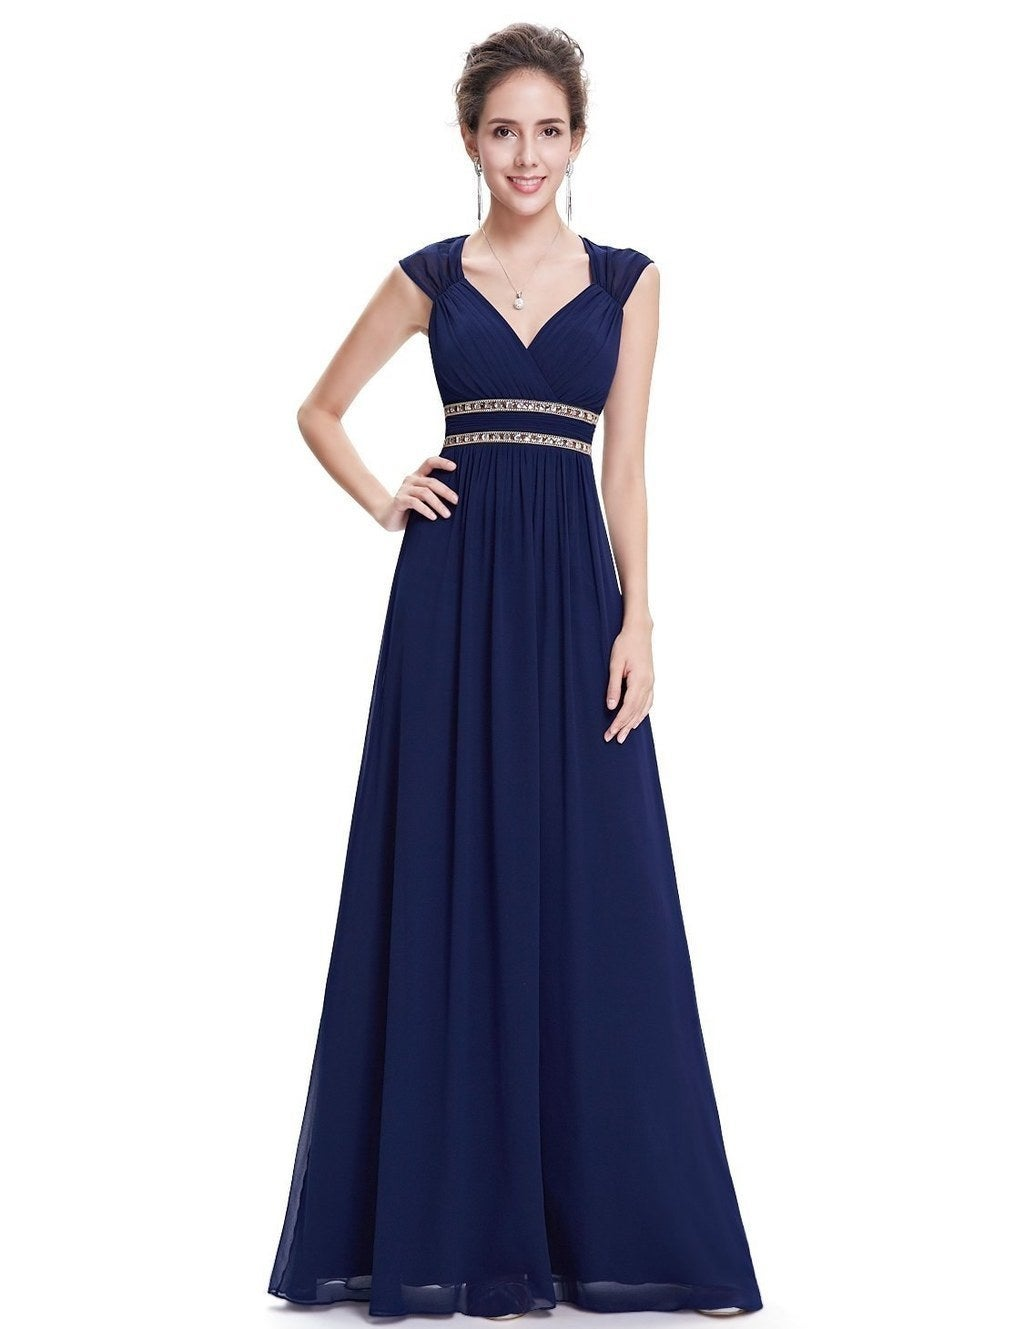 A Grecian Style Dress Suitable For Any Fat Wedding Will Also Make You Say To The Bride Why Want Leave Me